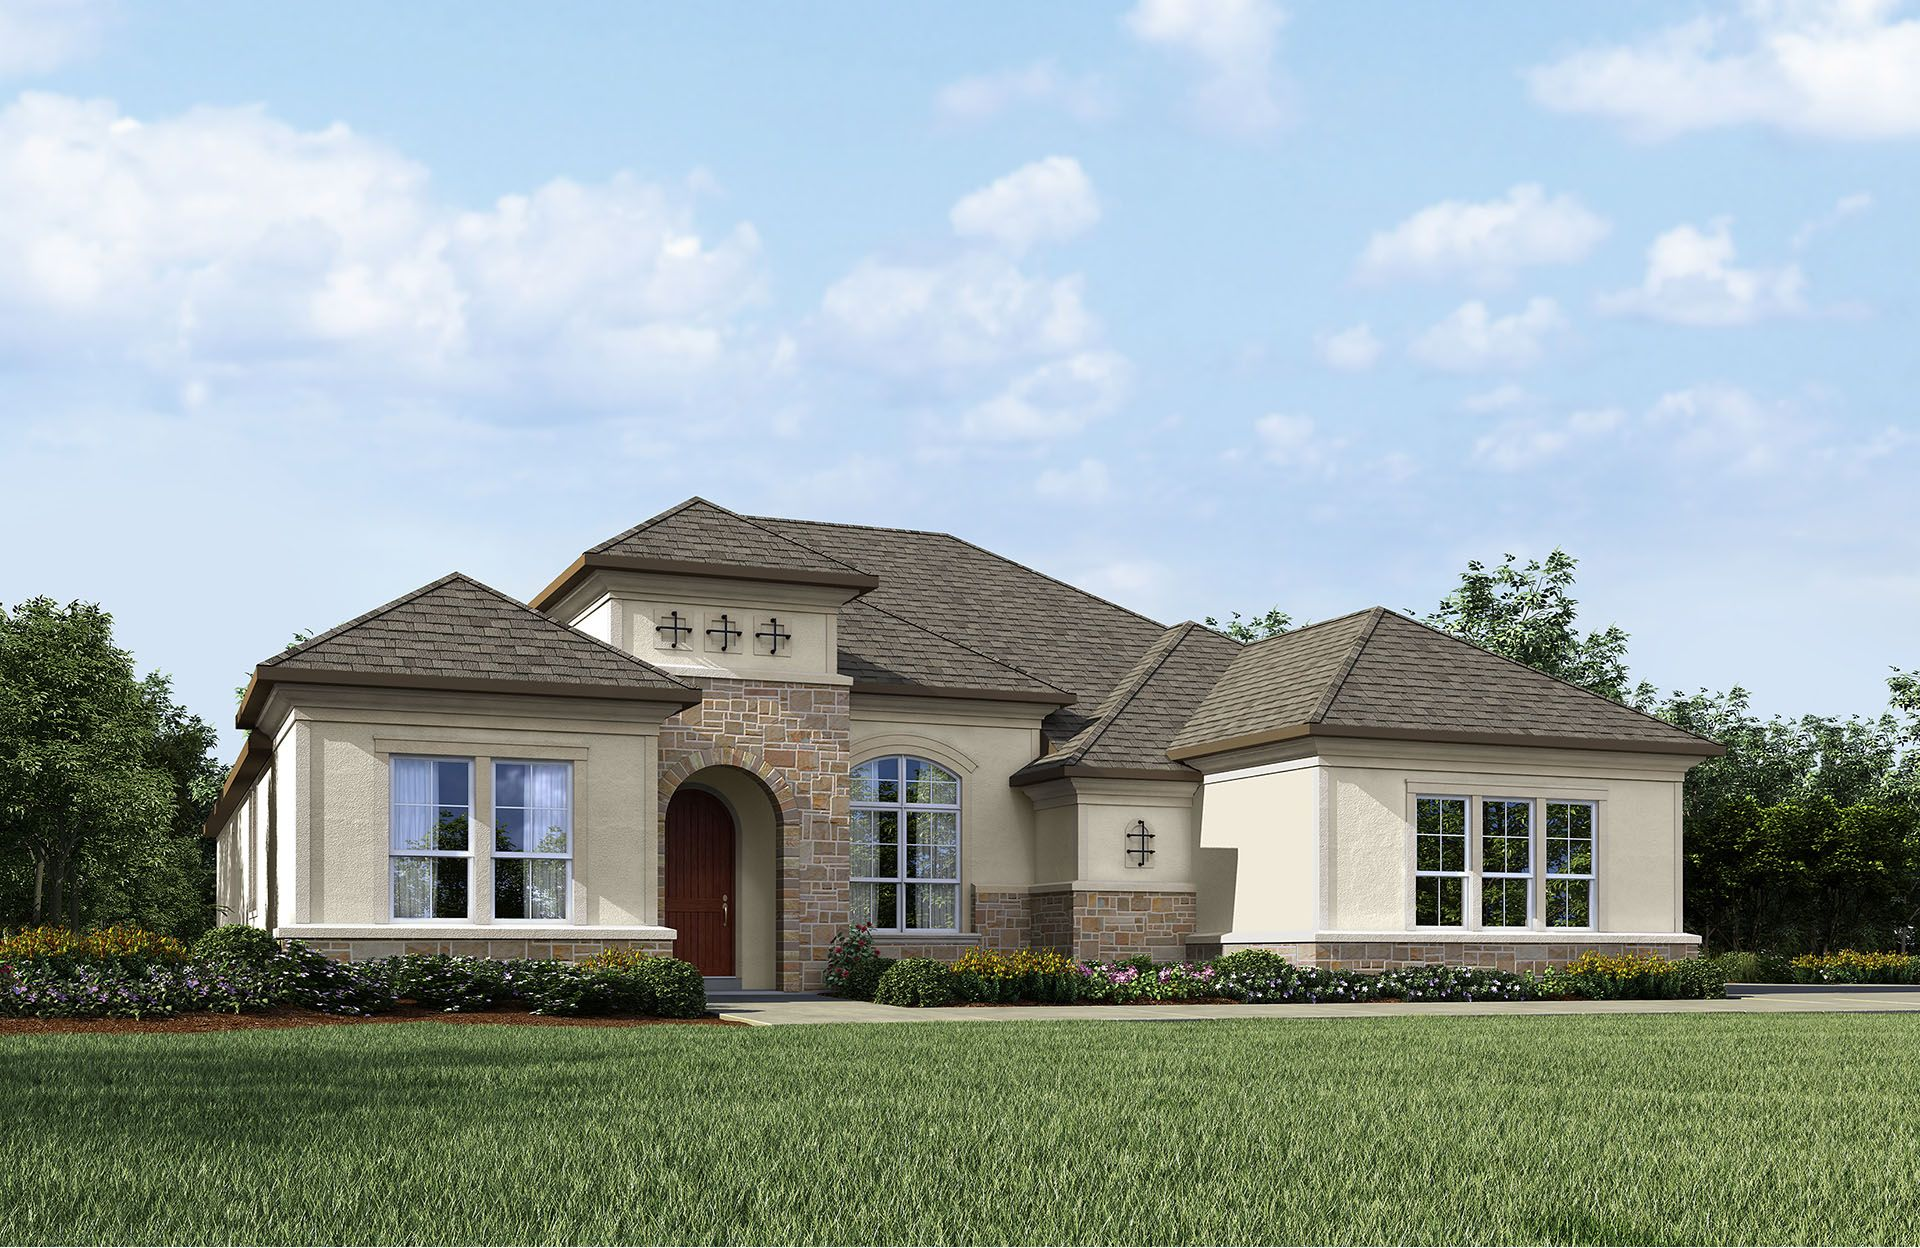 Single Family for Sale at Cimarron Hills - Lauren Iii 307 Flint Ridge Trail Georgetown, Texas 78628 United States